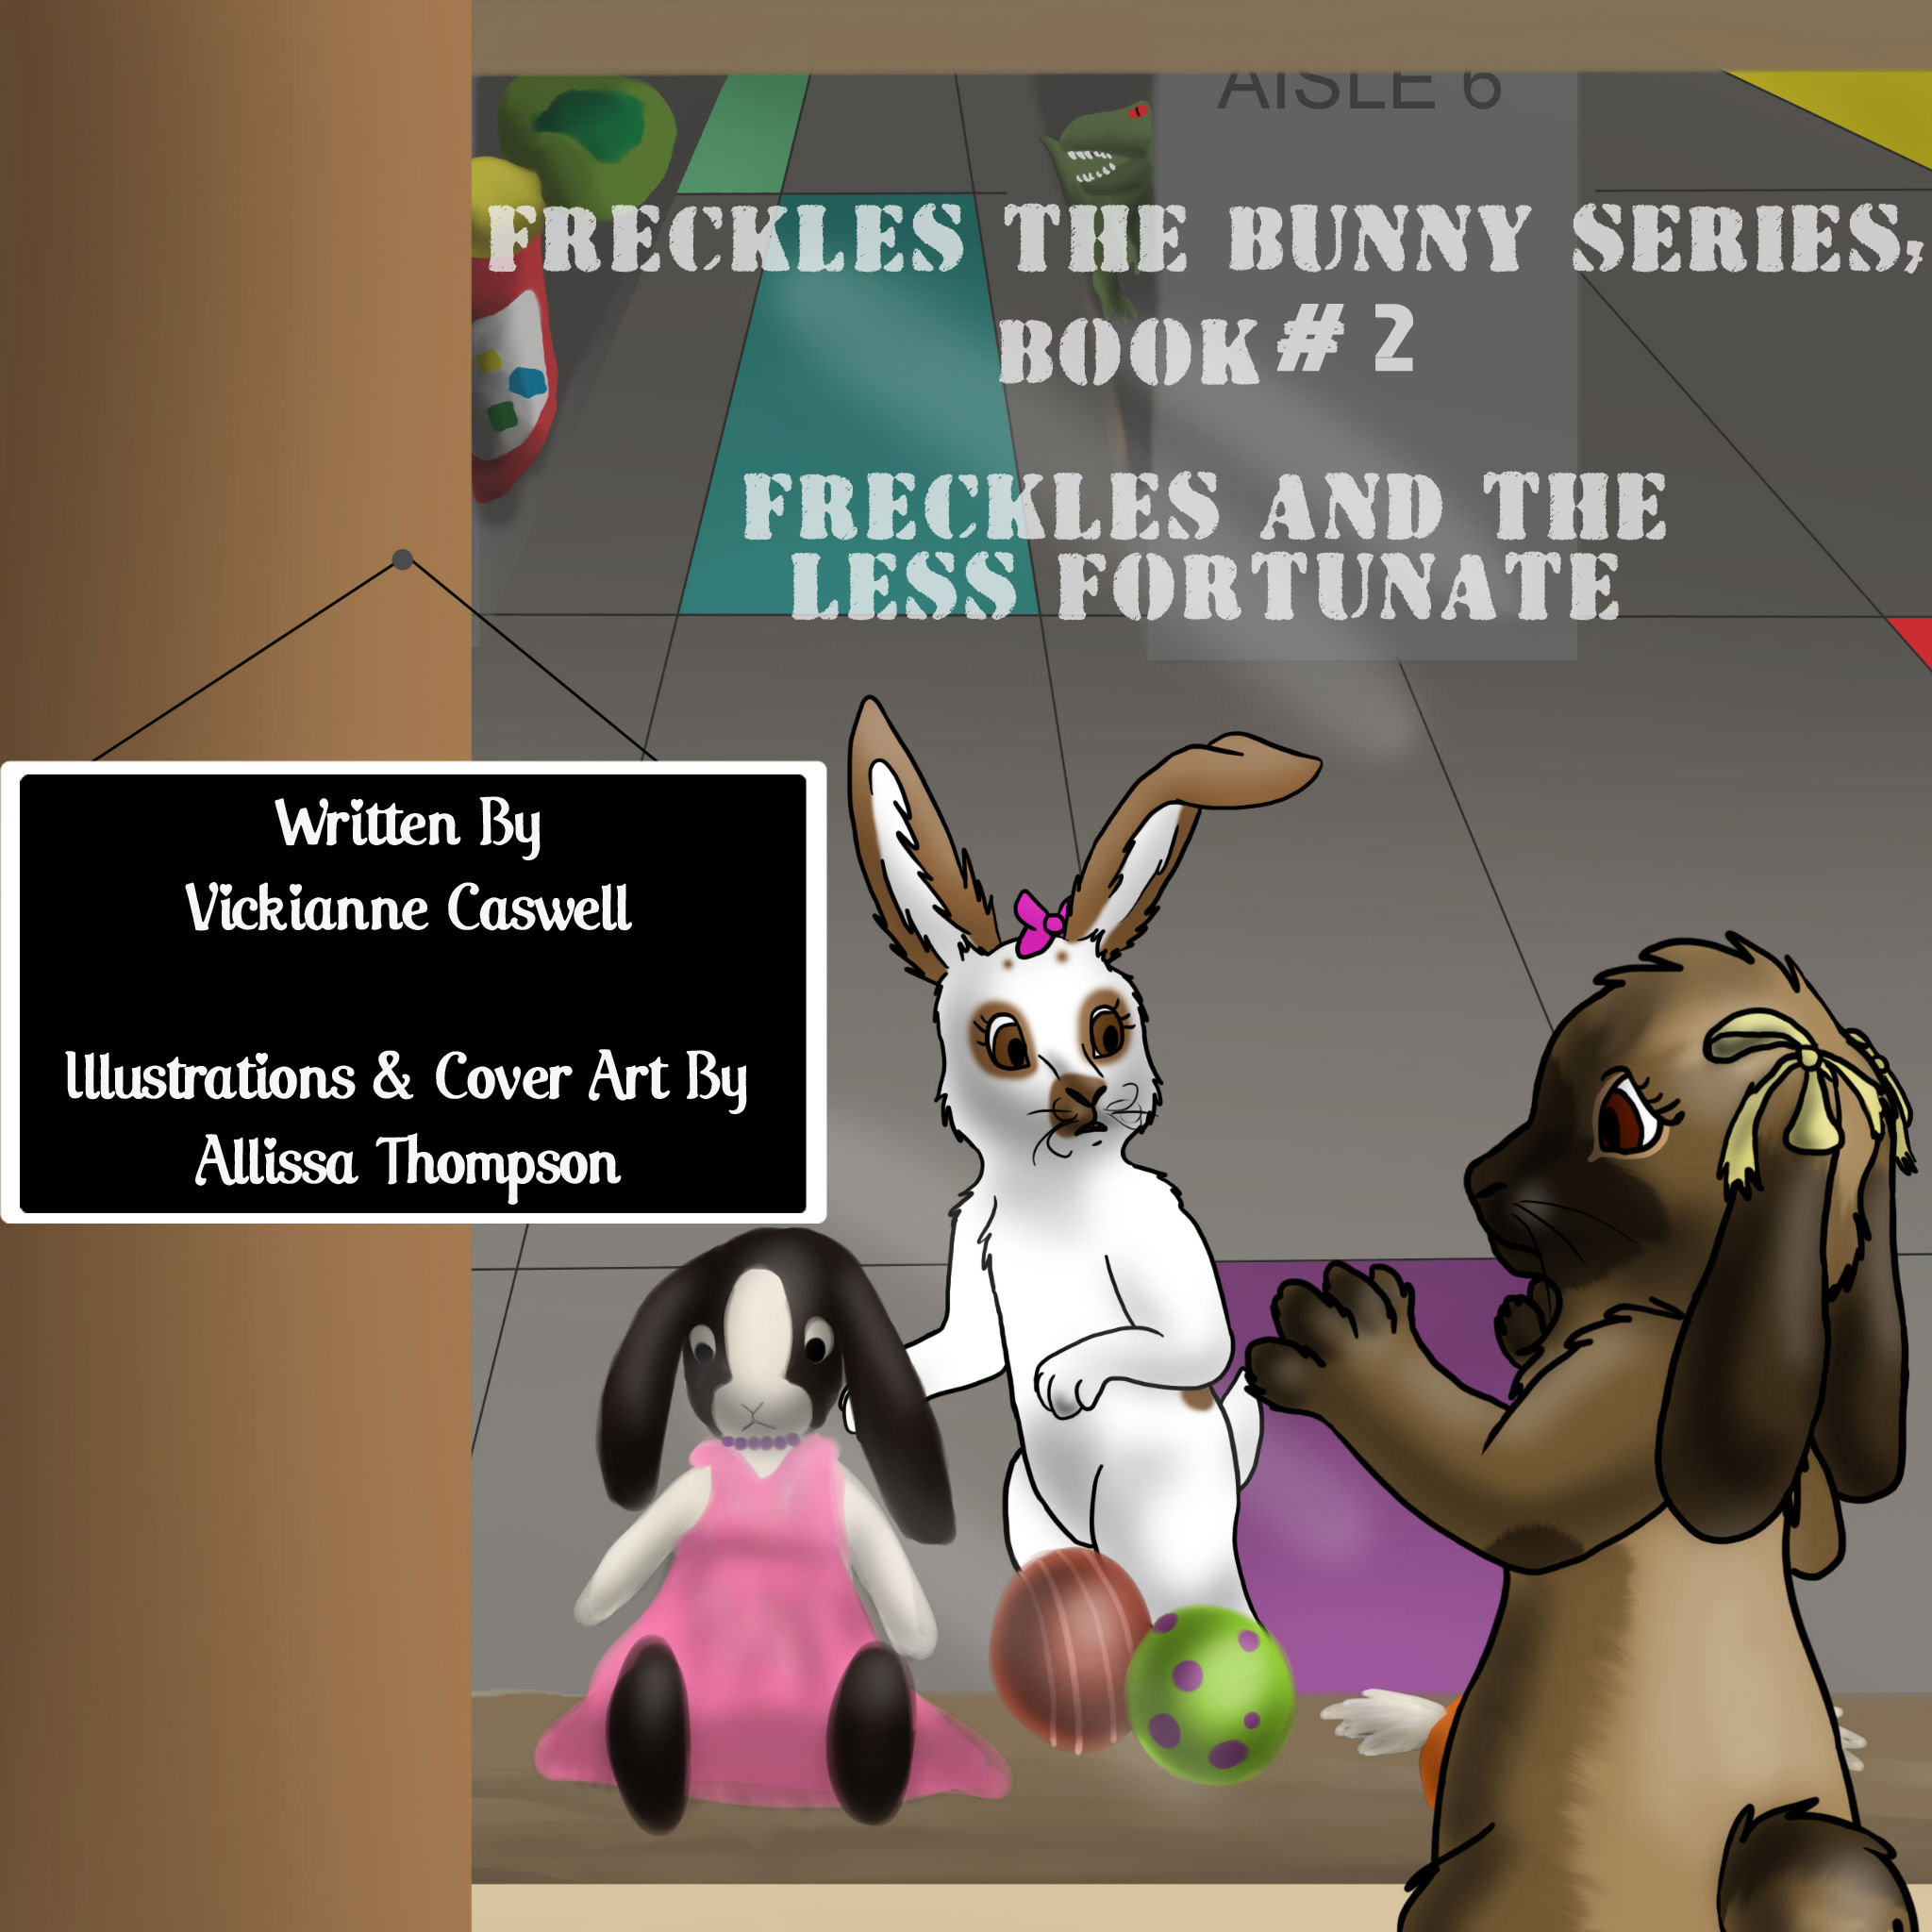 Freckles the Bunny Series, Book # 2: Freckles and the Less Fortu